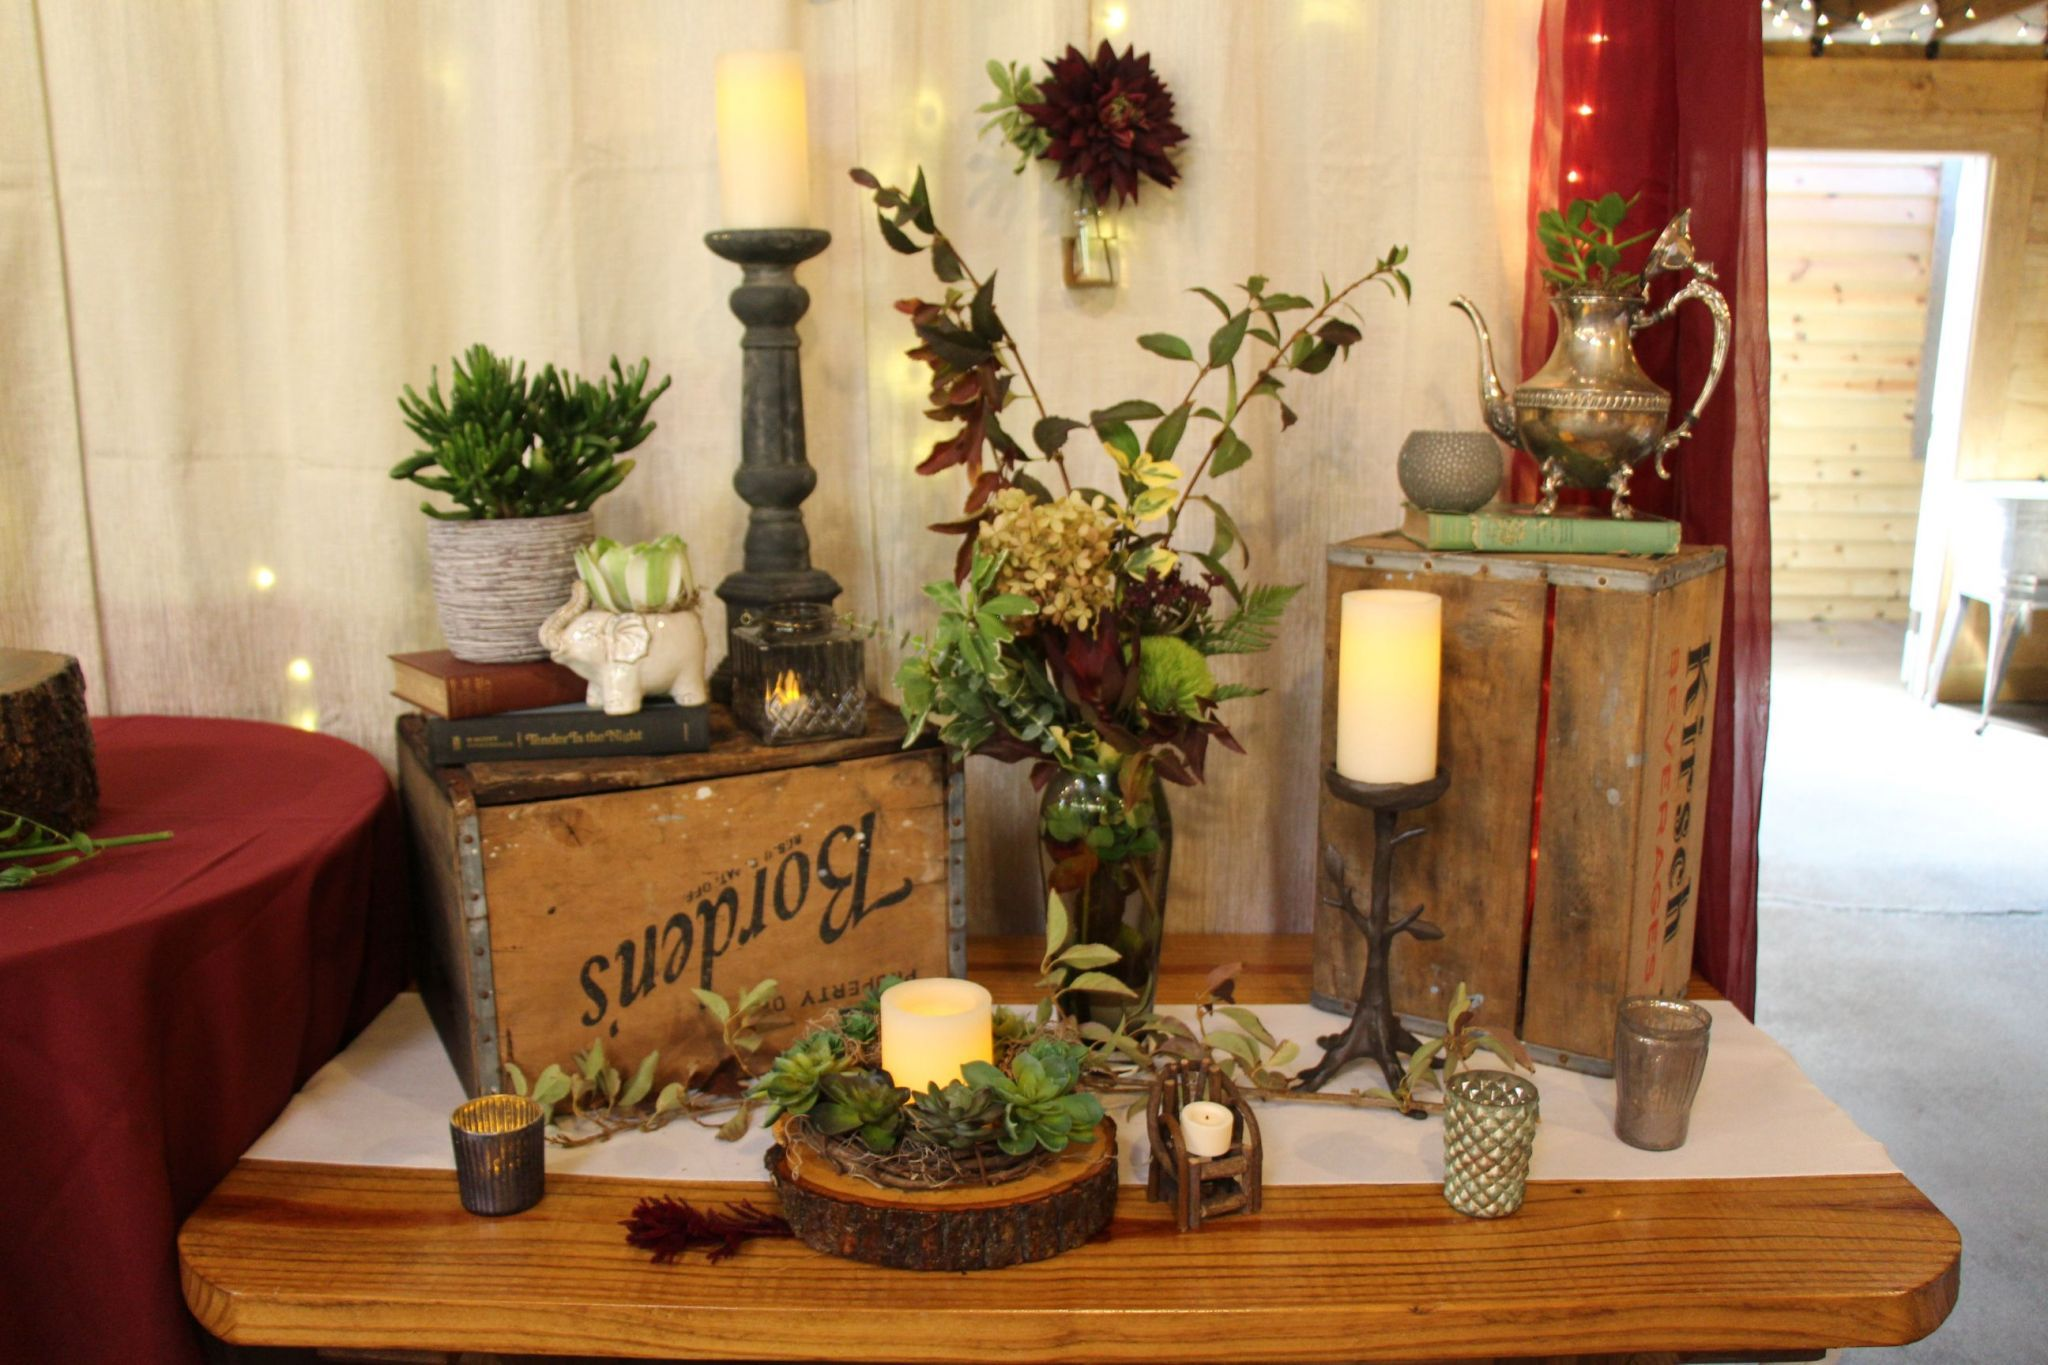 Example Of Side Dessert Table Decoration When There Is Only A Large Cake For Display This Wedding Used Our Cream Dessert Table Decor Farm Wedding Venue Luray